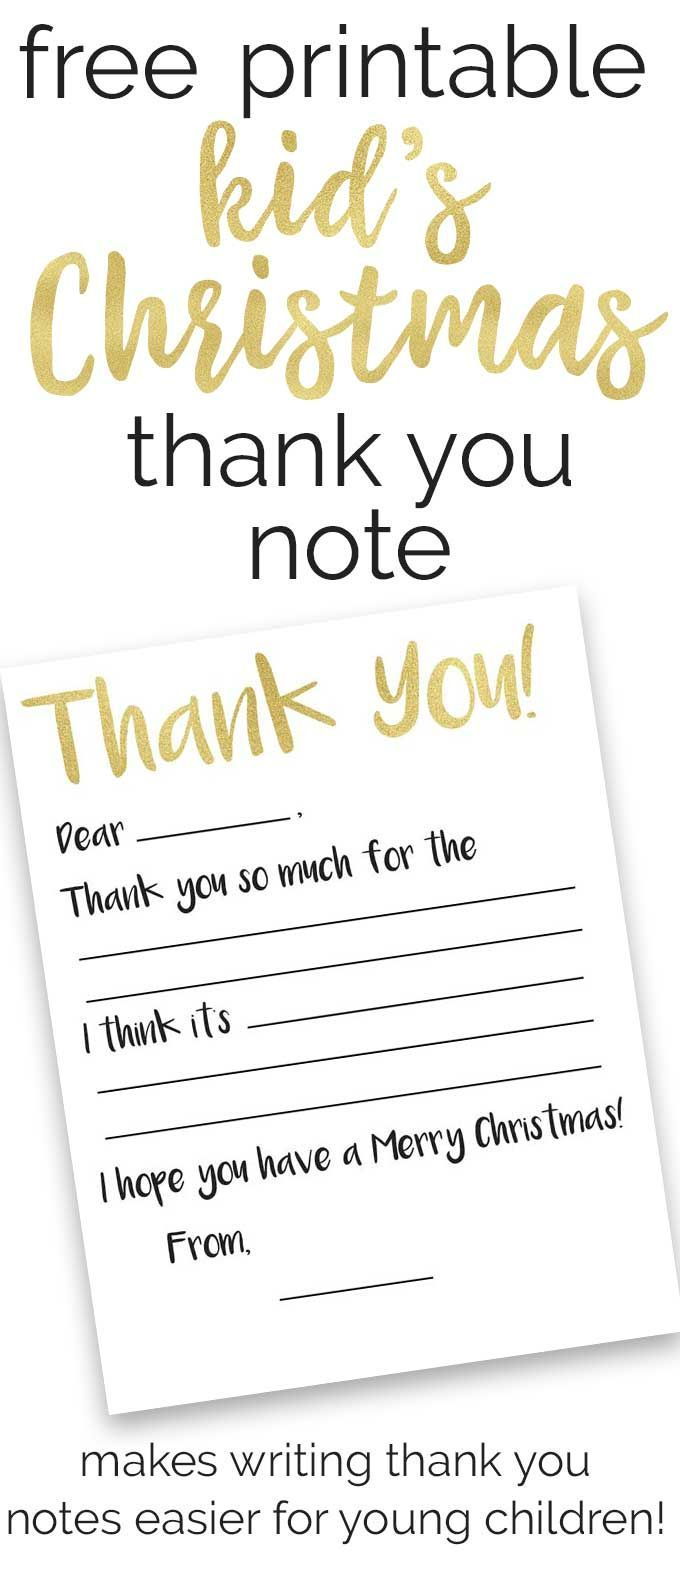 Make Writing Thank You Notes Easier For Young Children With This